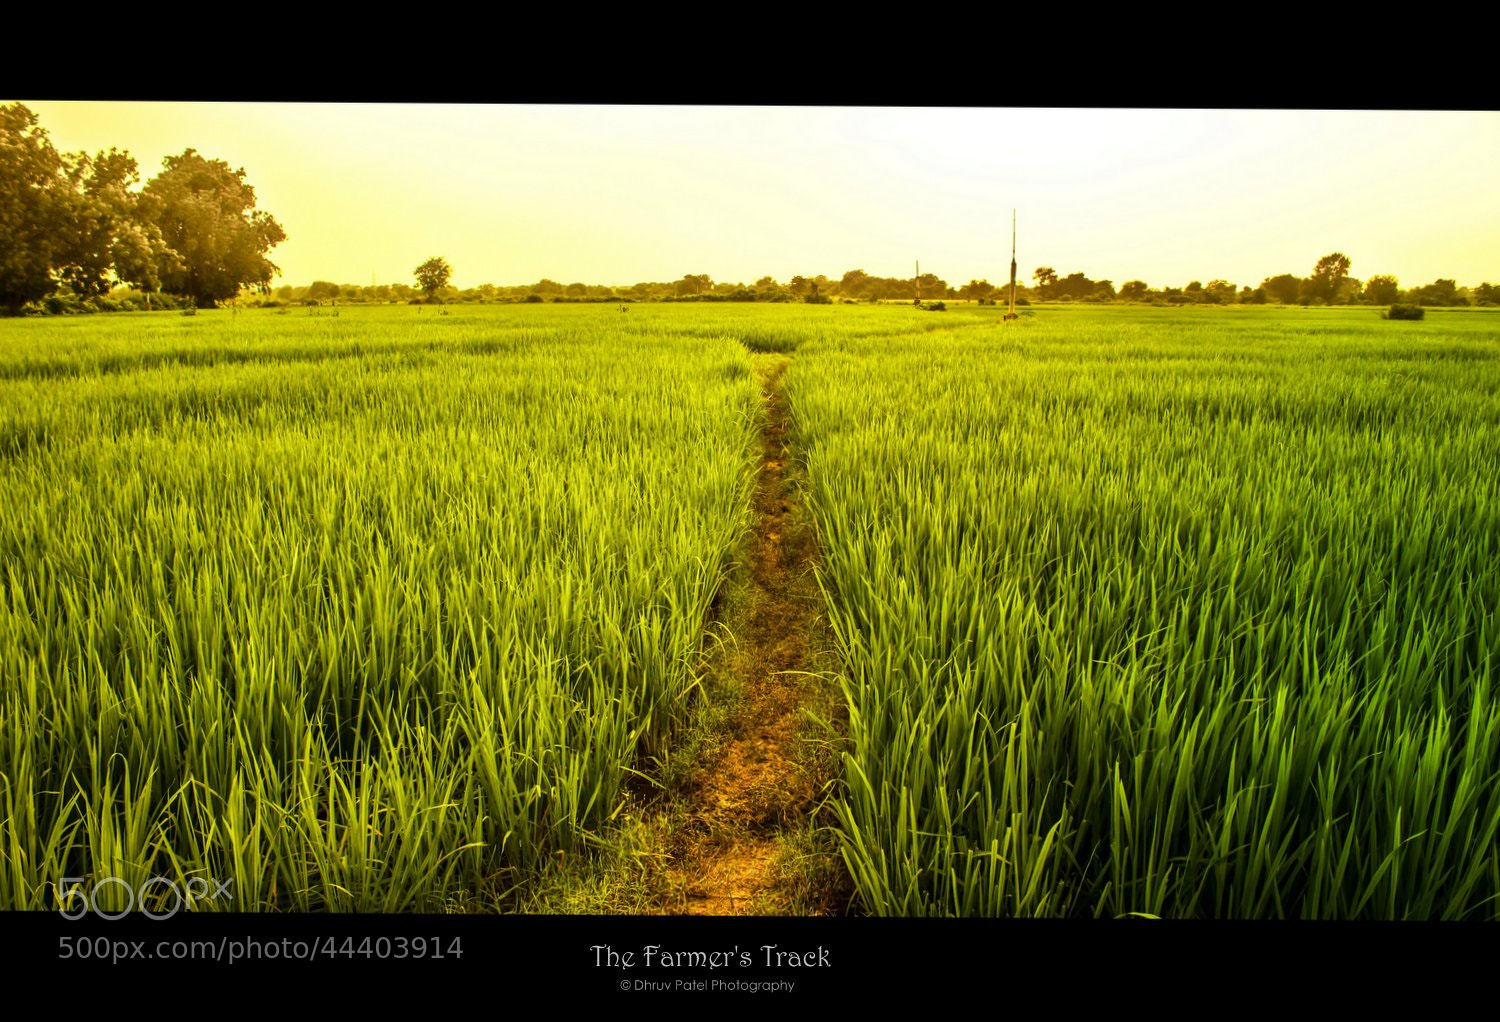 Photograph The Farmer's Track by Dhruv Patel on 500px